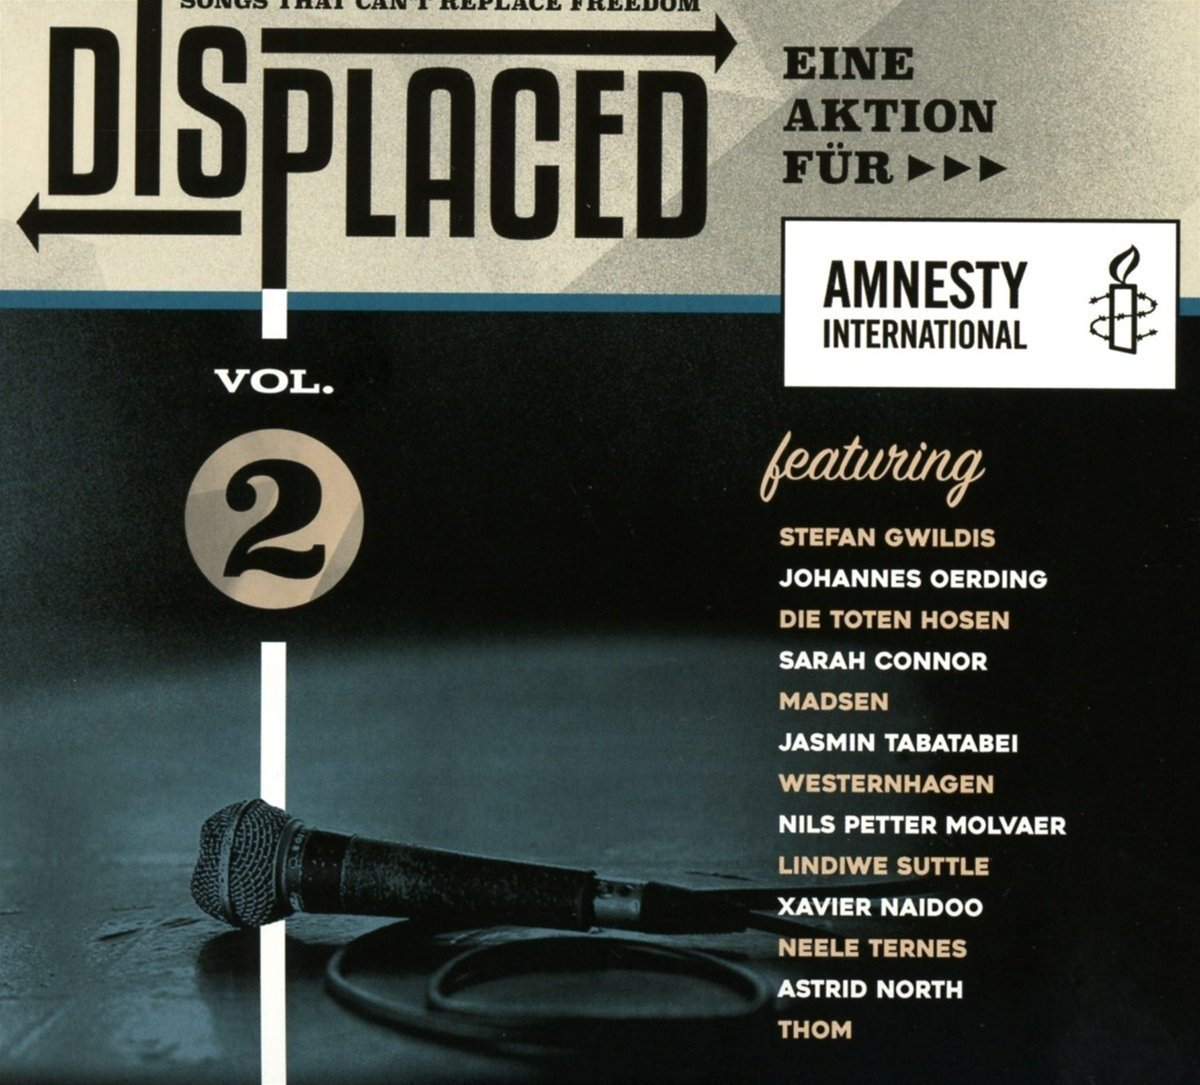 catalog 06 16 Displaced 2